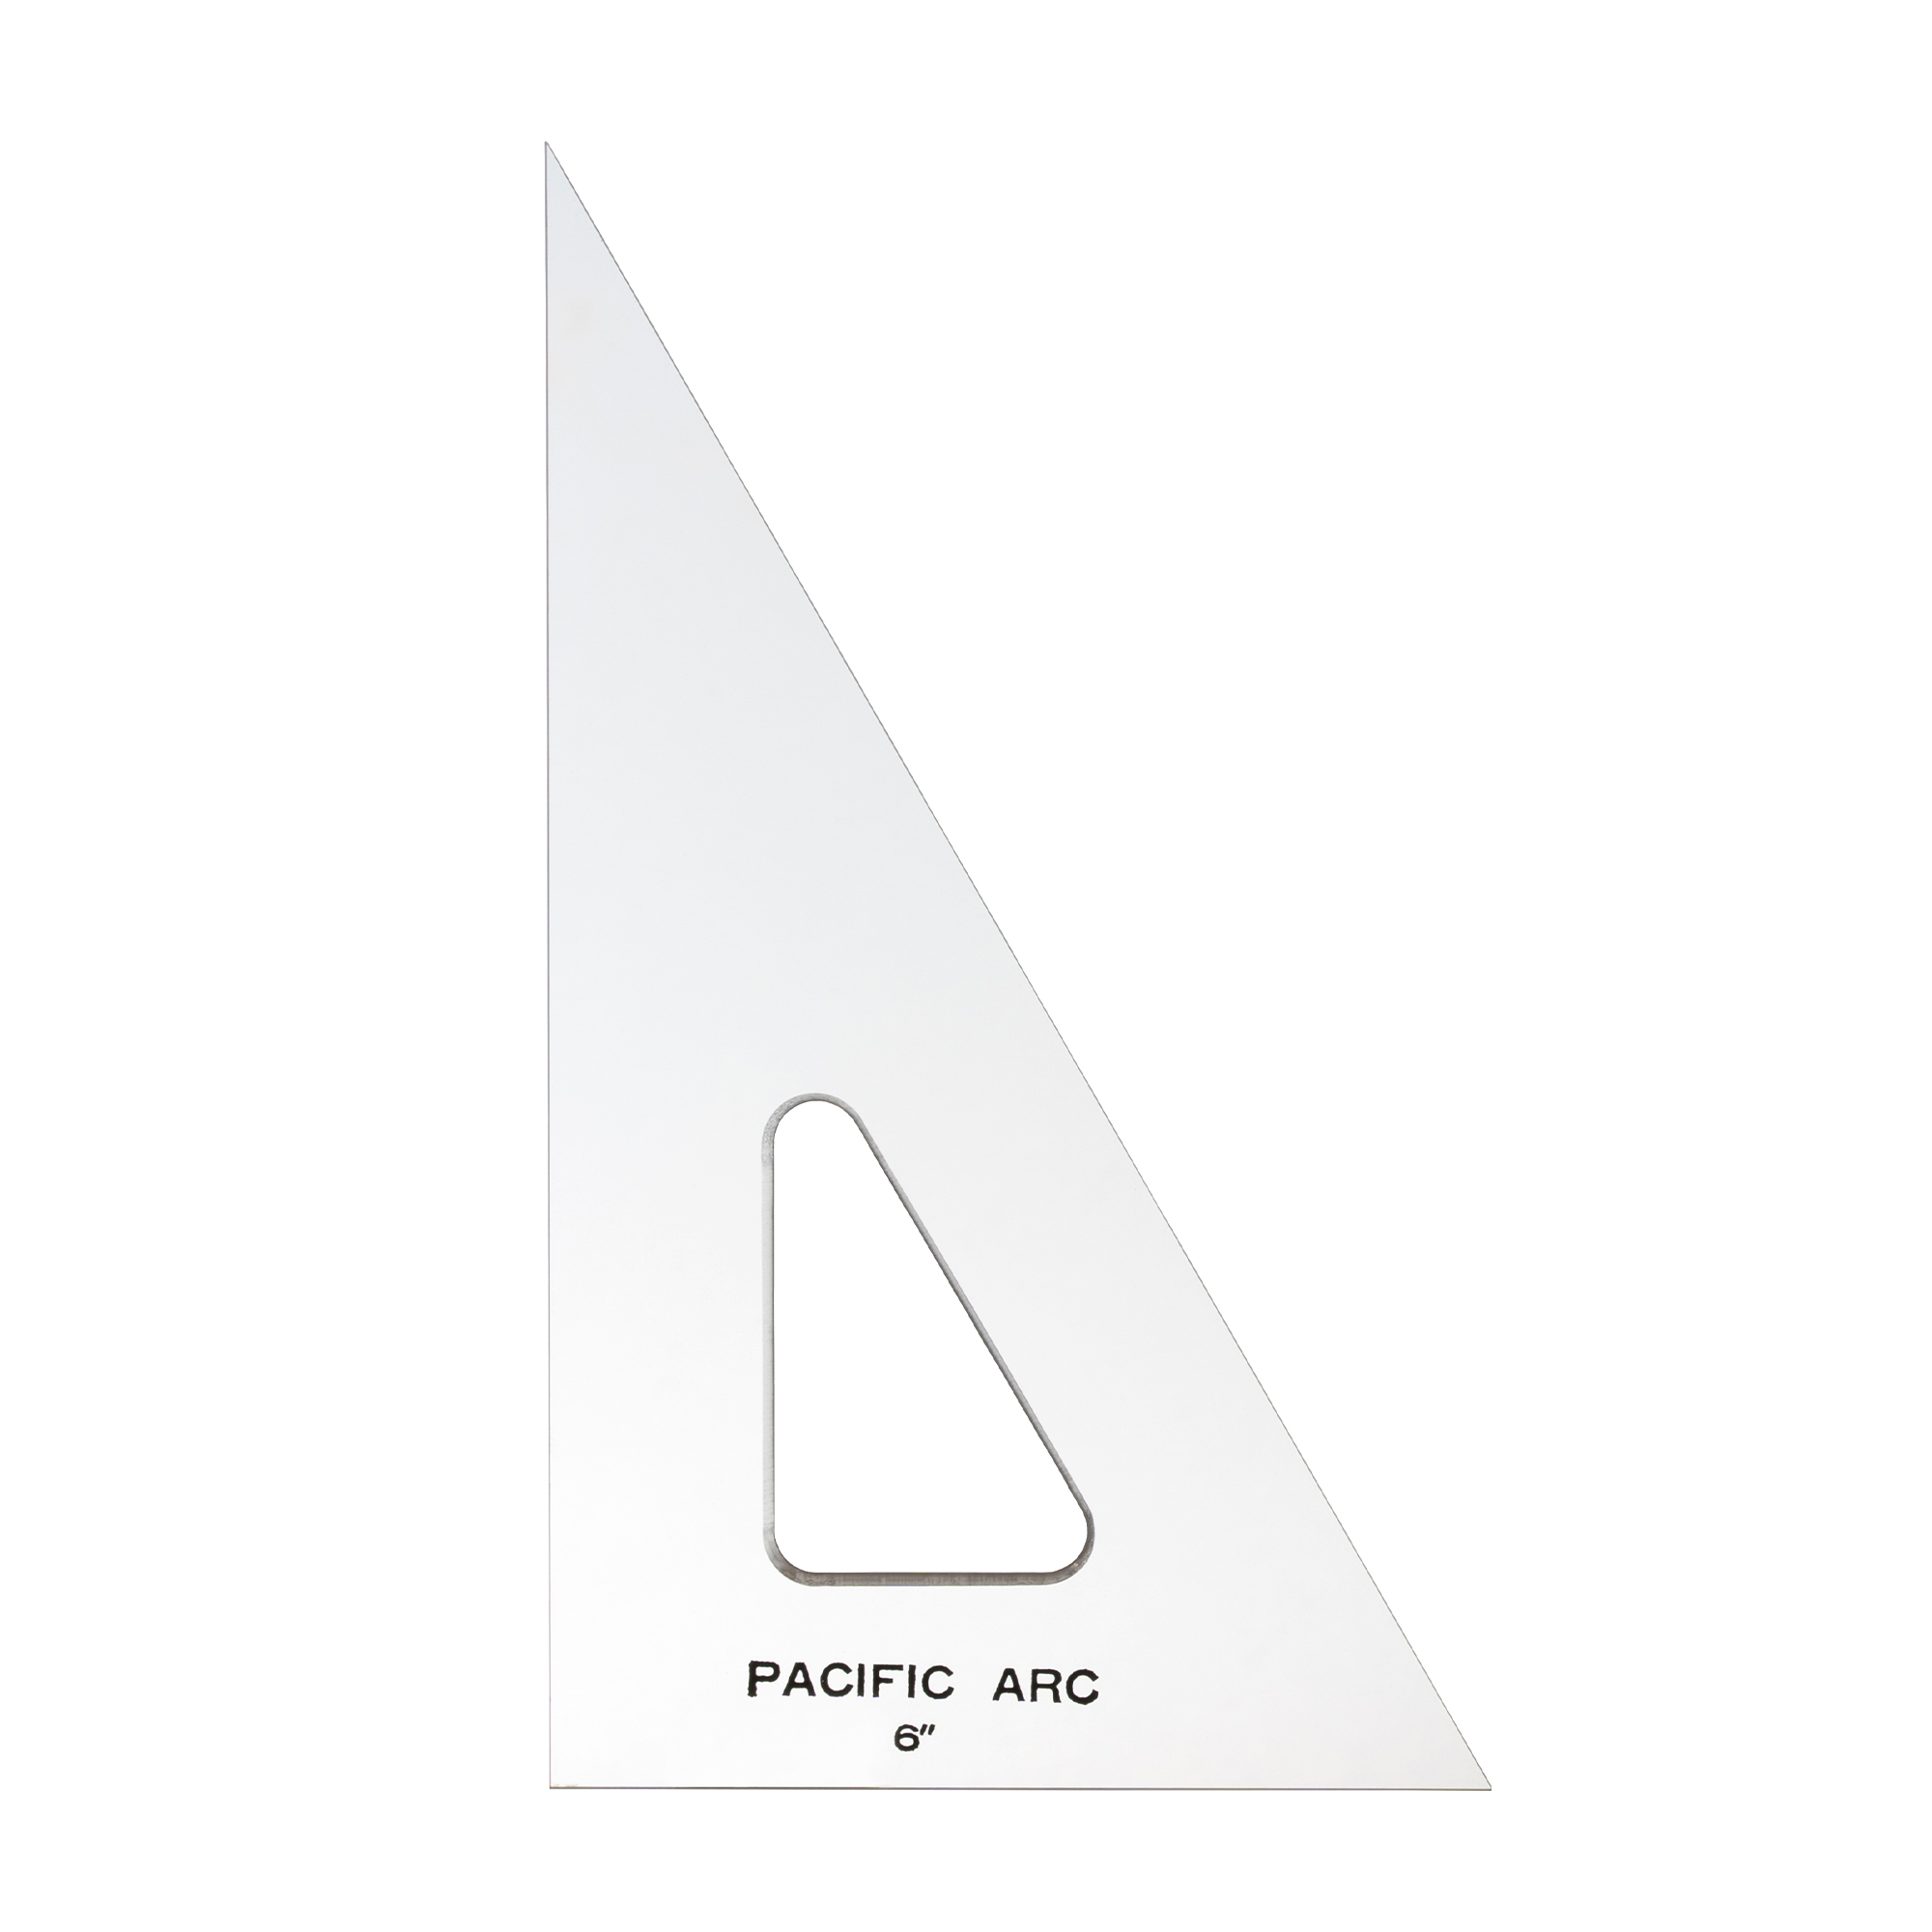 Clear drafting triangles by pacific arc